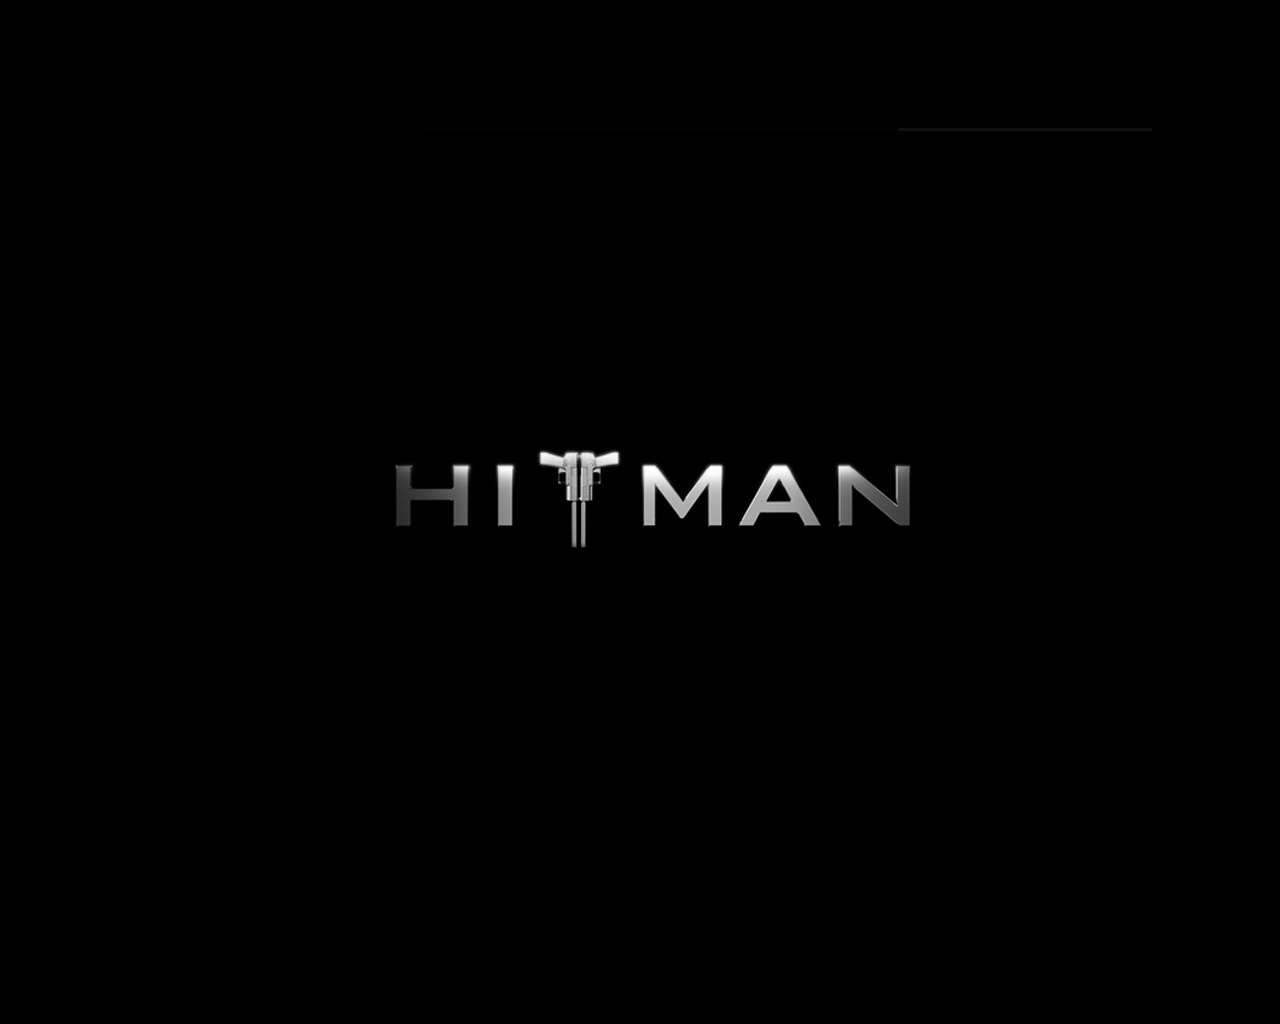 Hitman wallpaper hitman movies wallpapers in jpg format for free hitman movie logo wallpaper hitman movies altavistaventures Choice Image